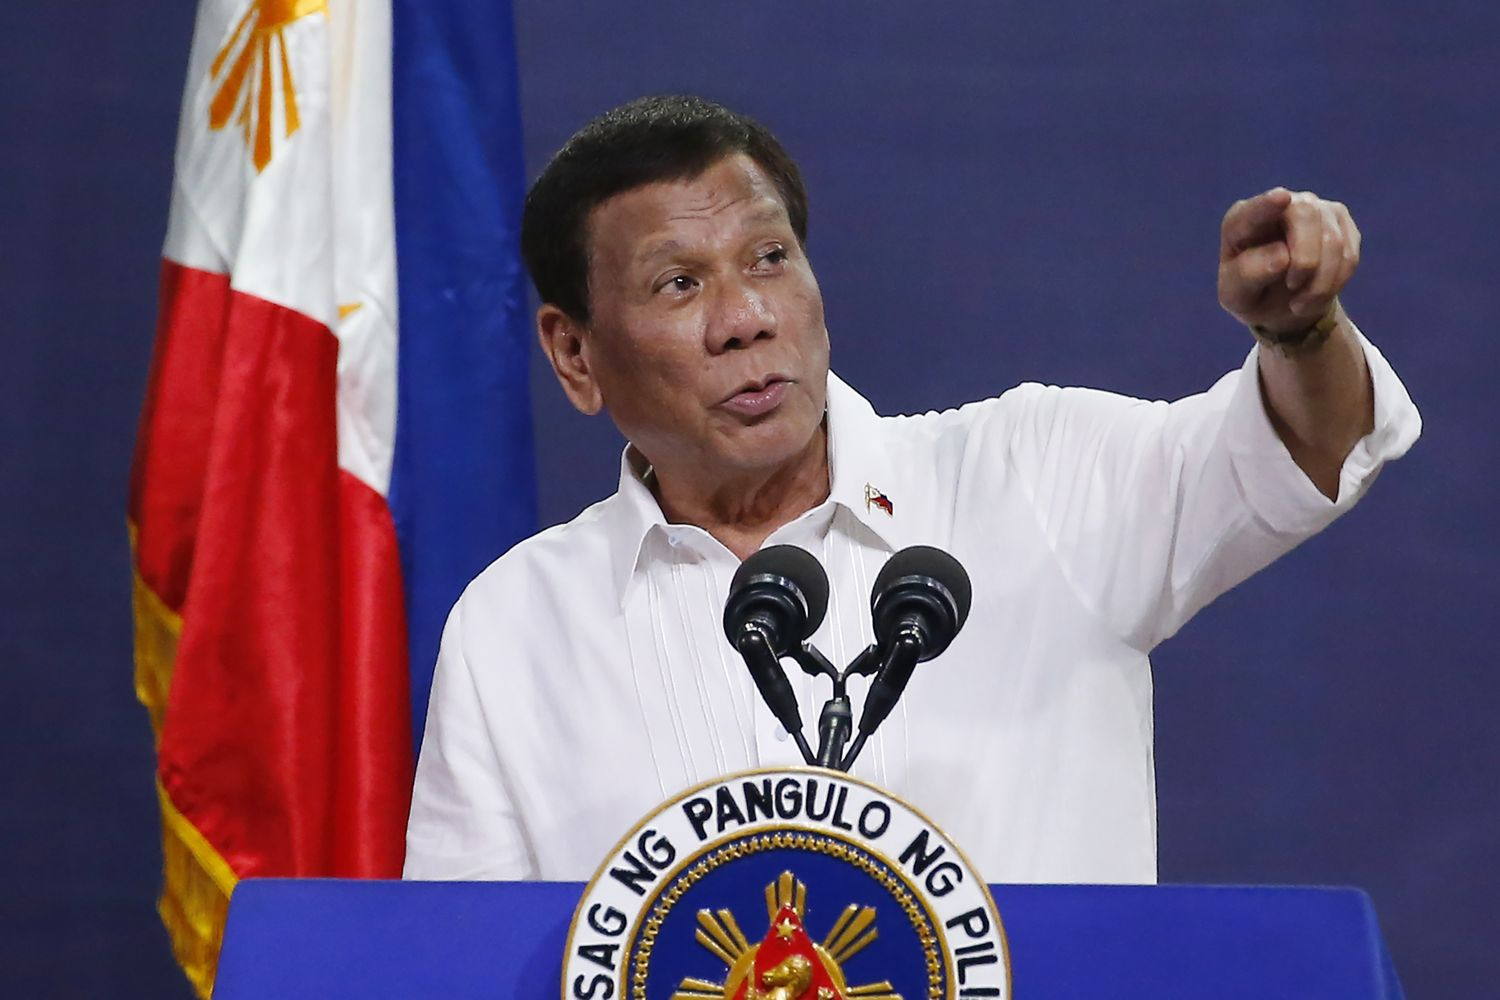 Phillipines President Rodrigo Duterte hurt in motorcycle accident